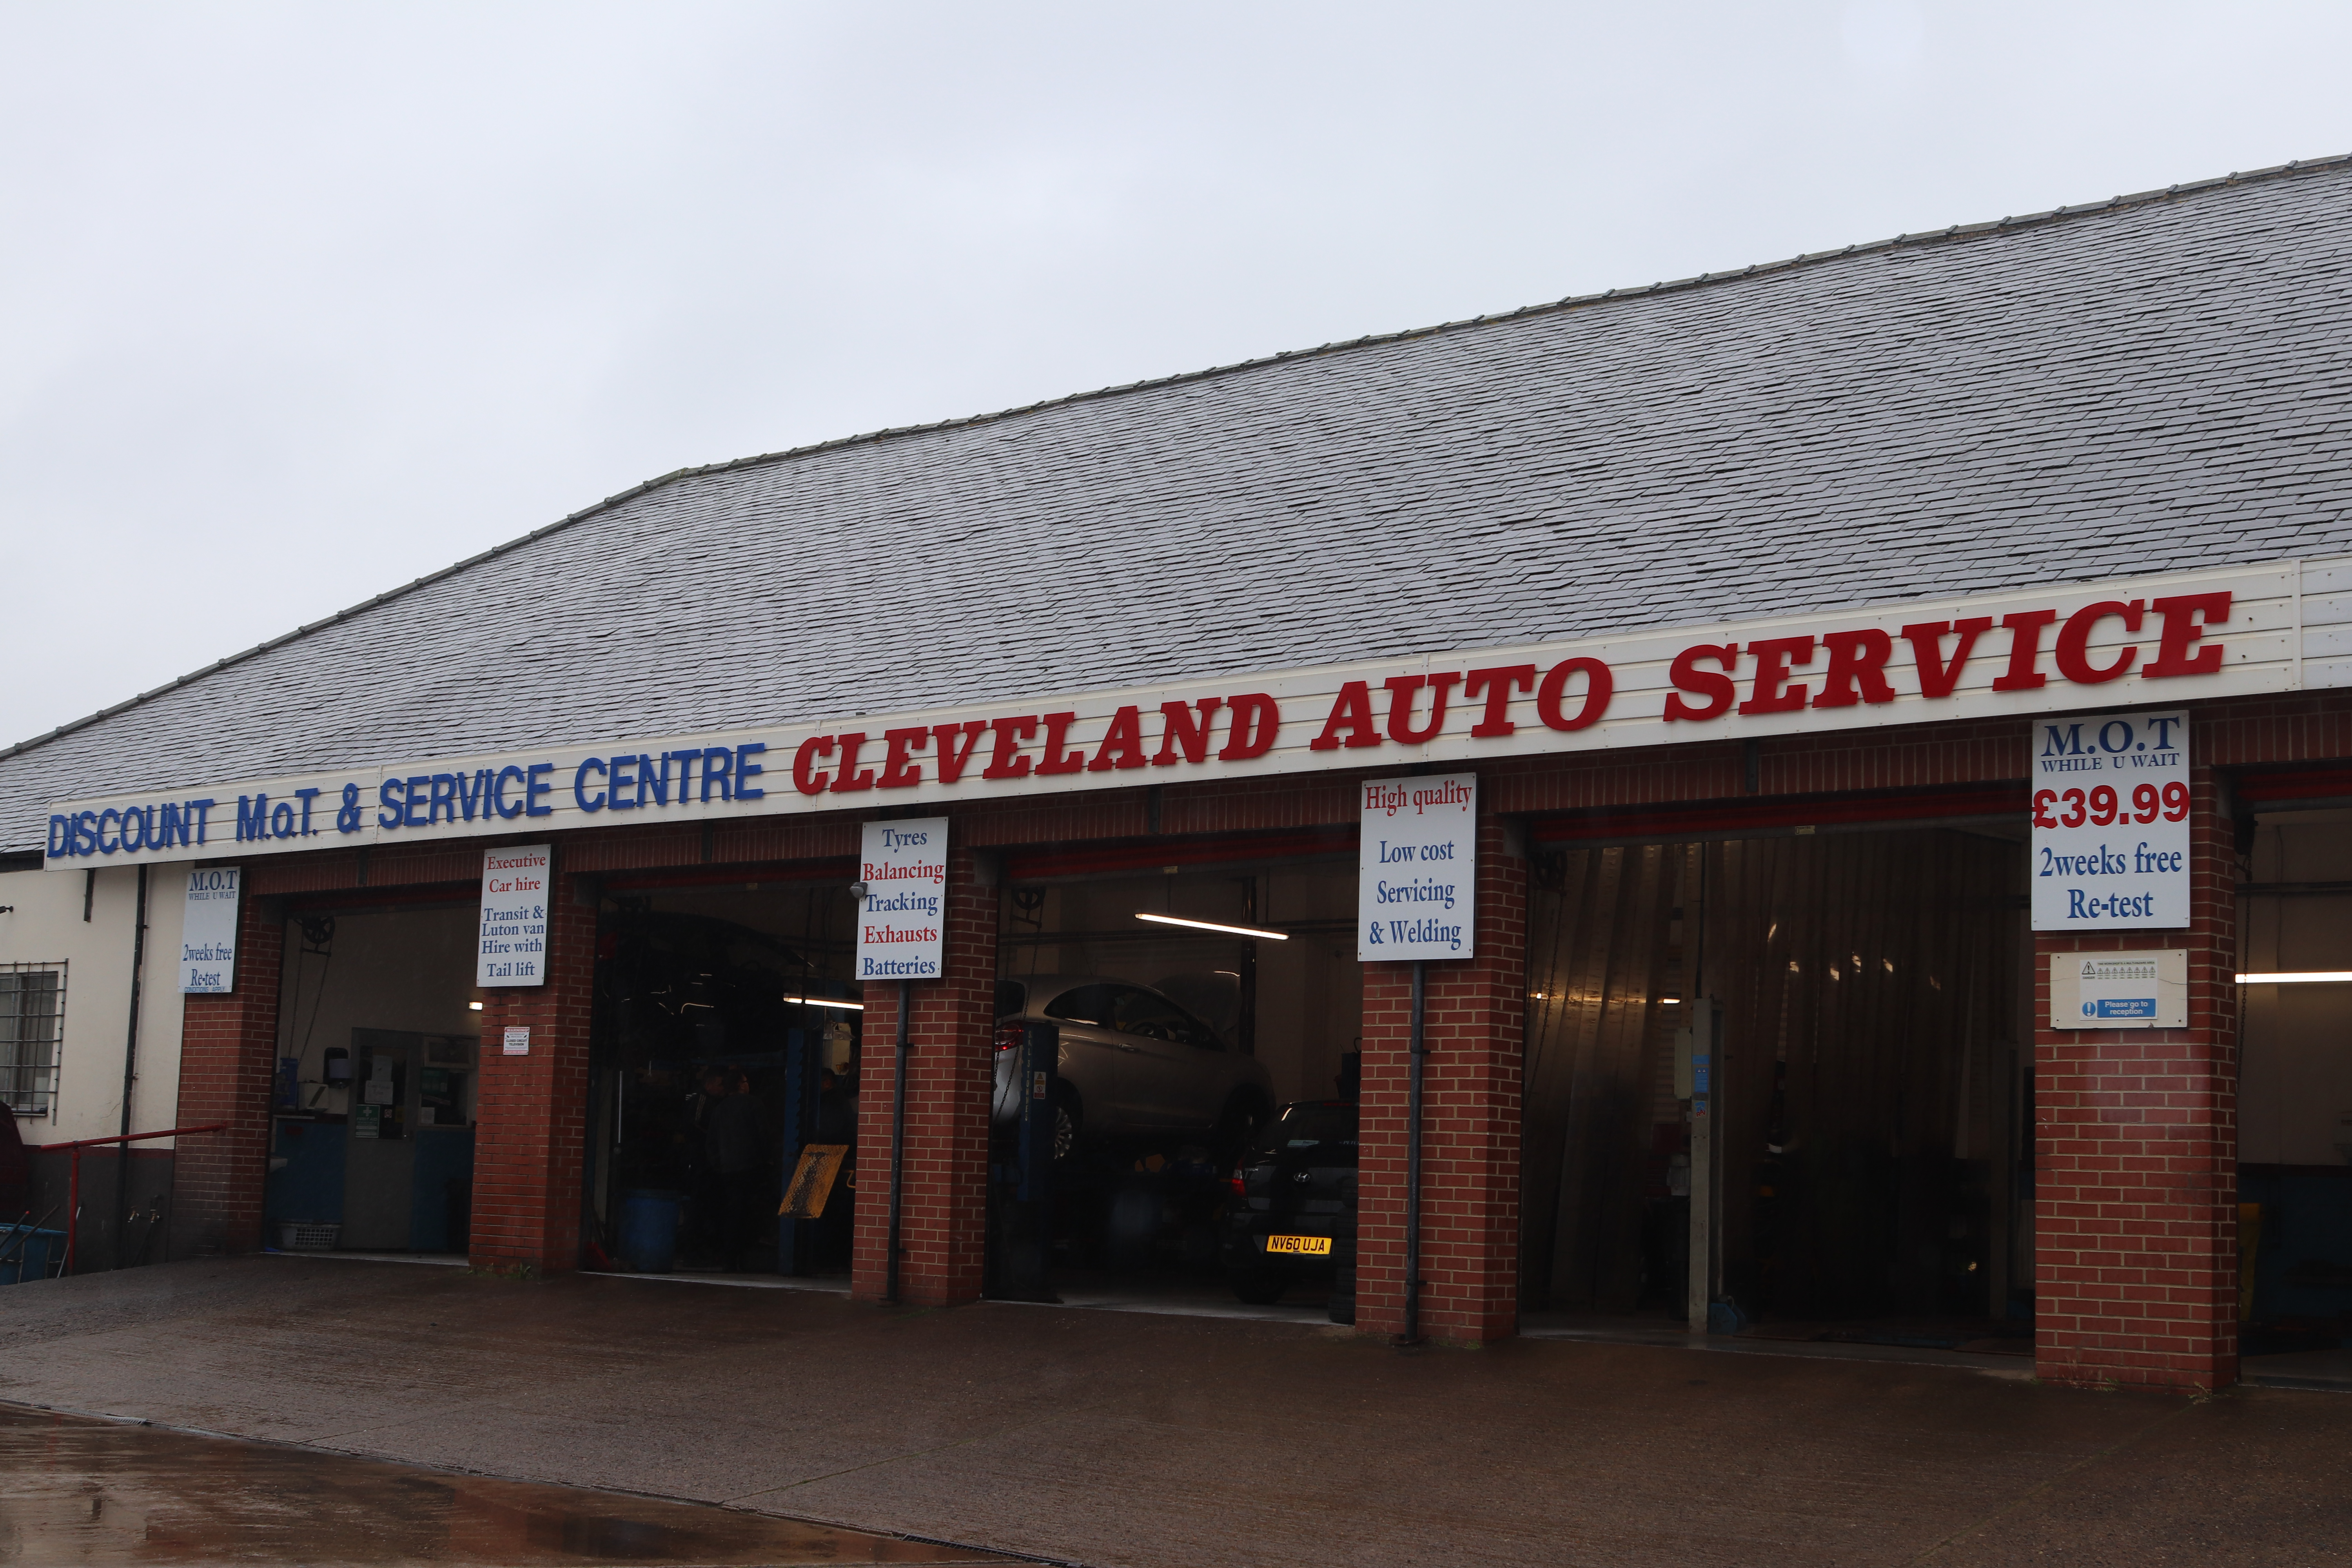 Cleveland Autos Services and Hire Co Ltd Ask £295,000 Middlesbrough